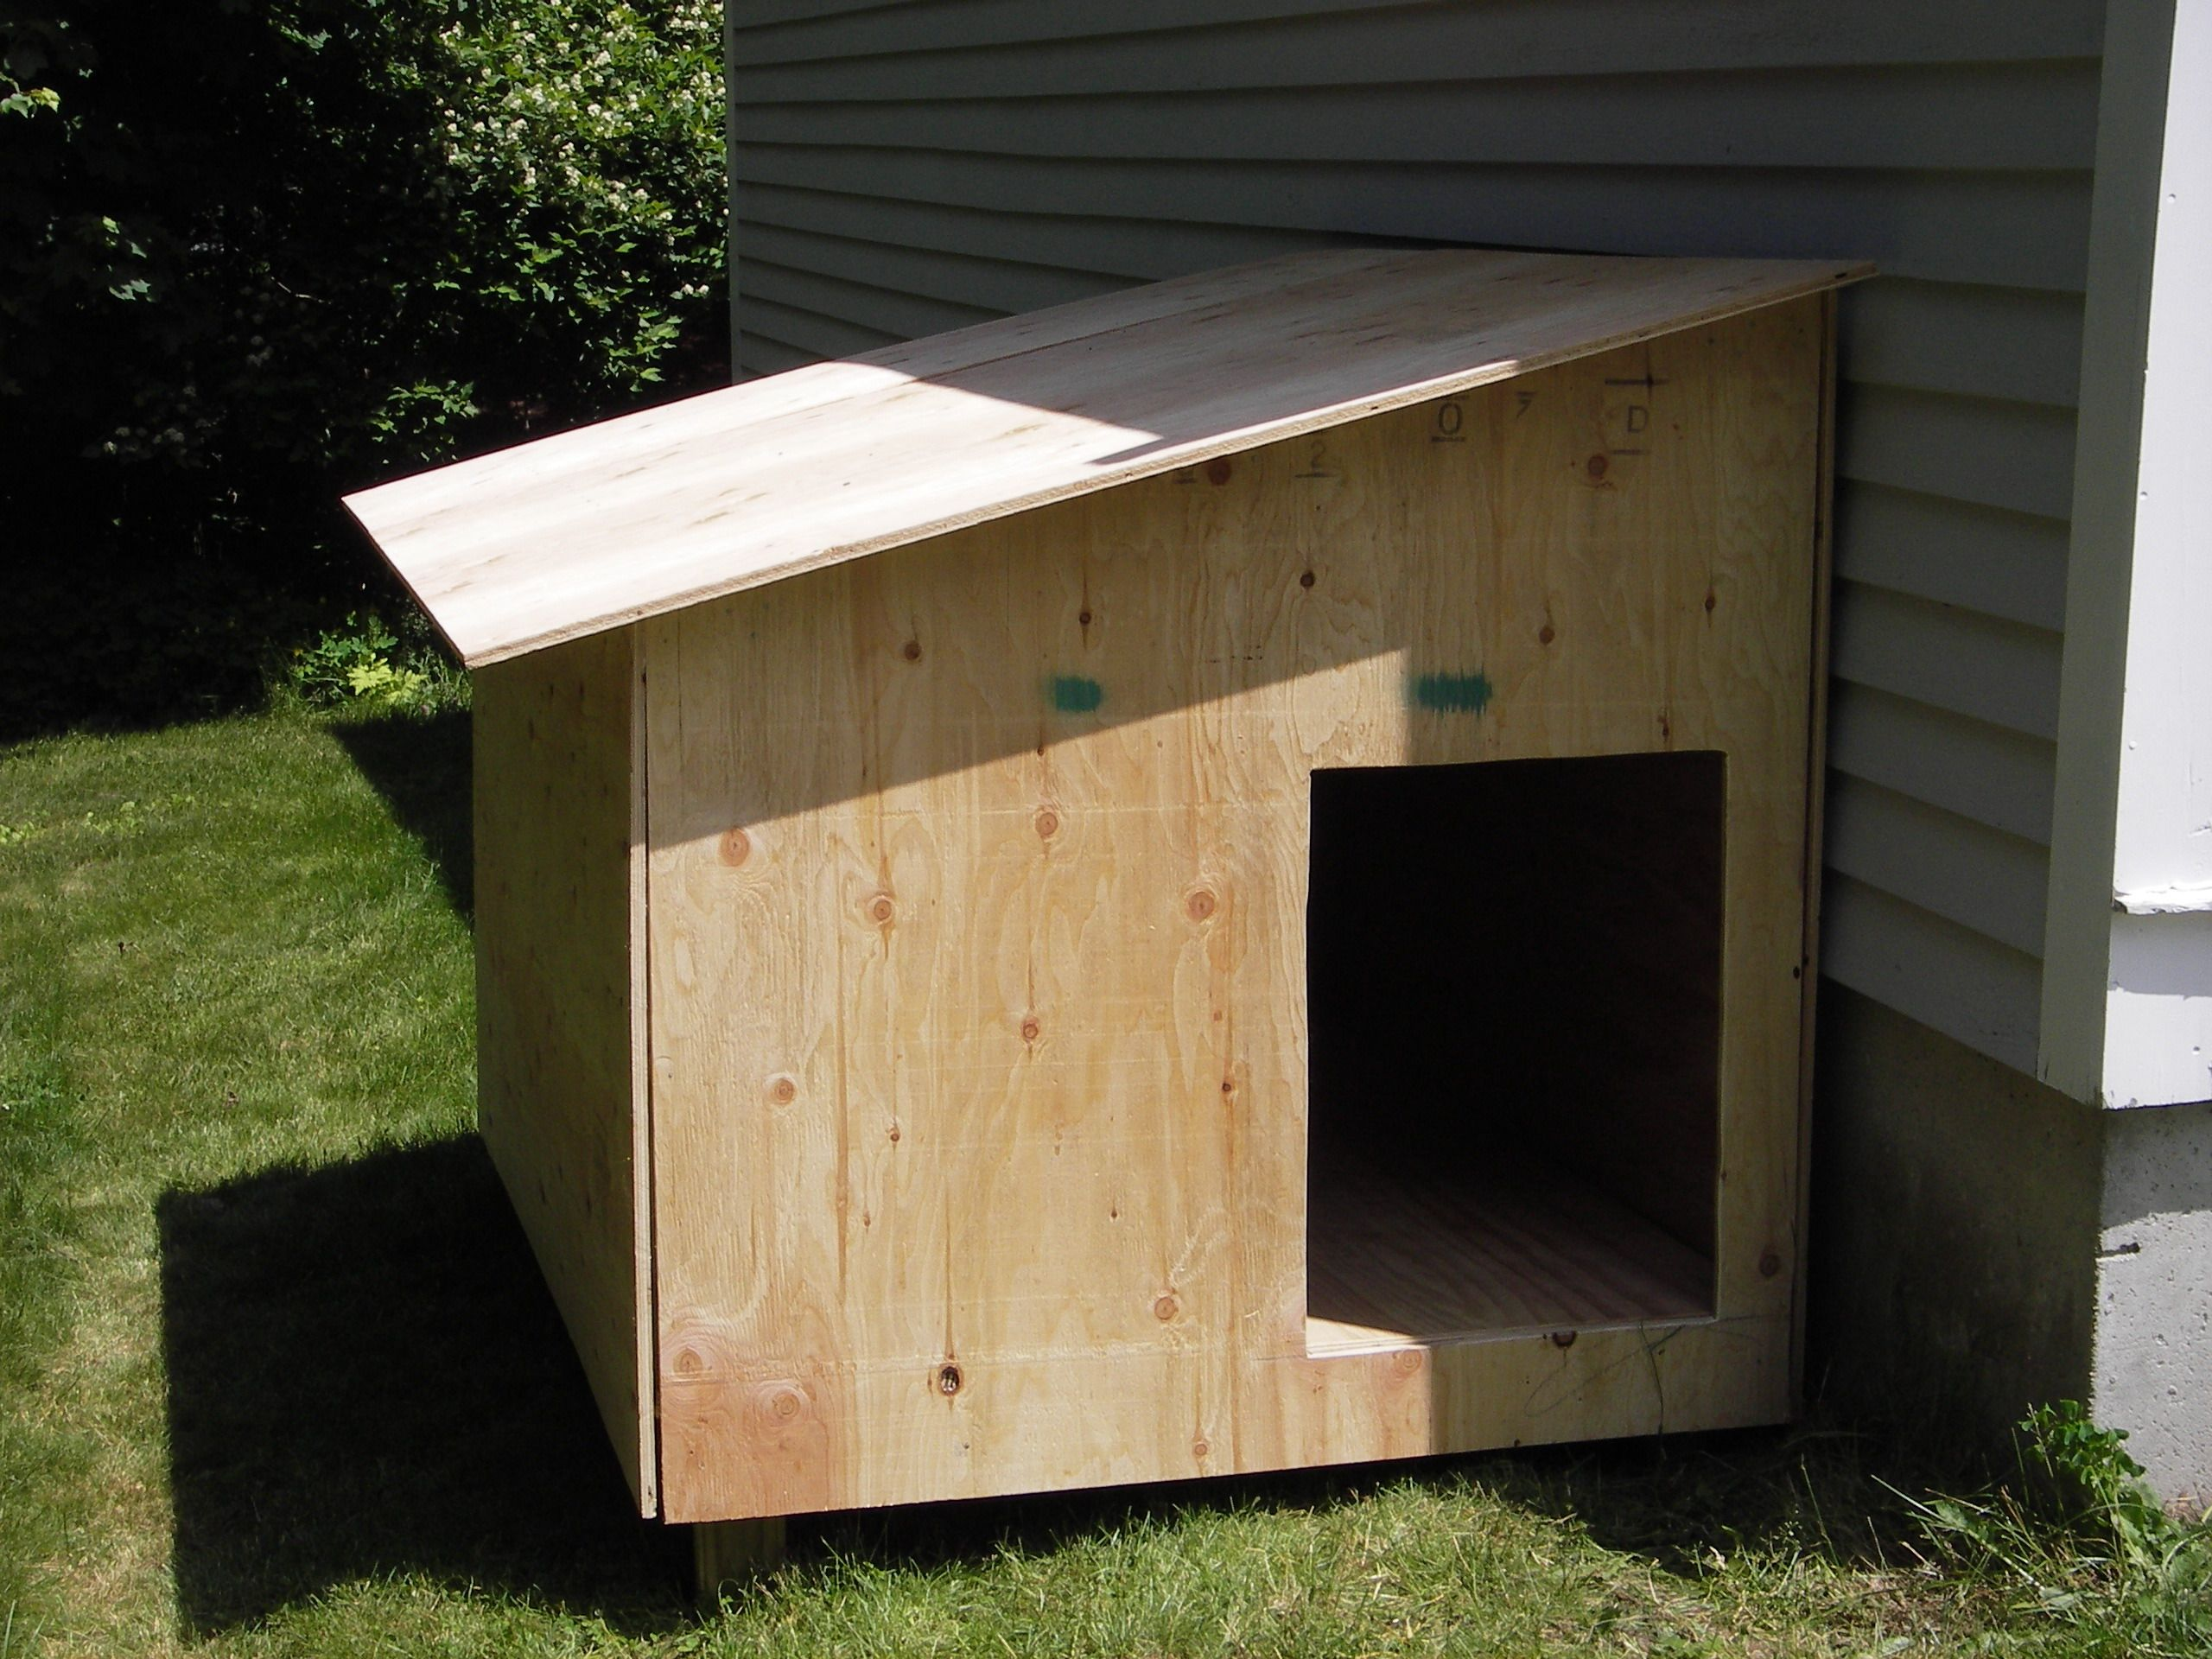 17 Best ideas about Wooden Dog House on Pinterest Dog houses